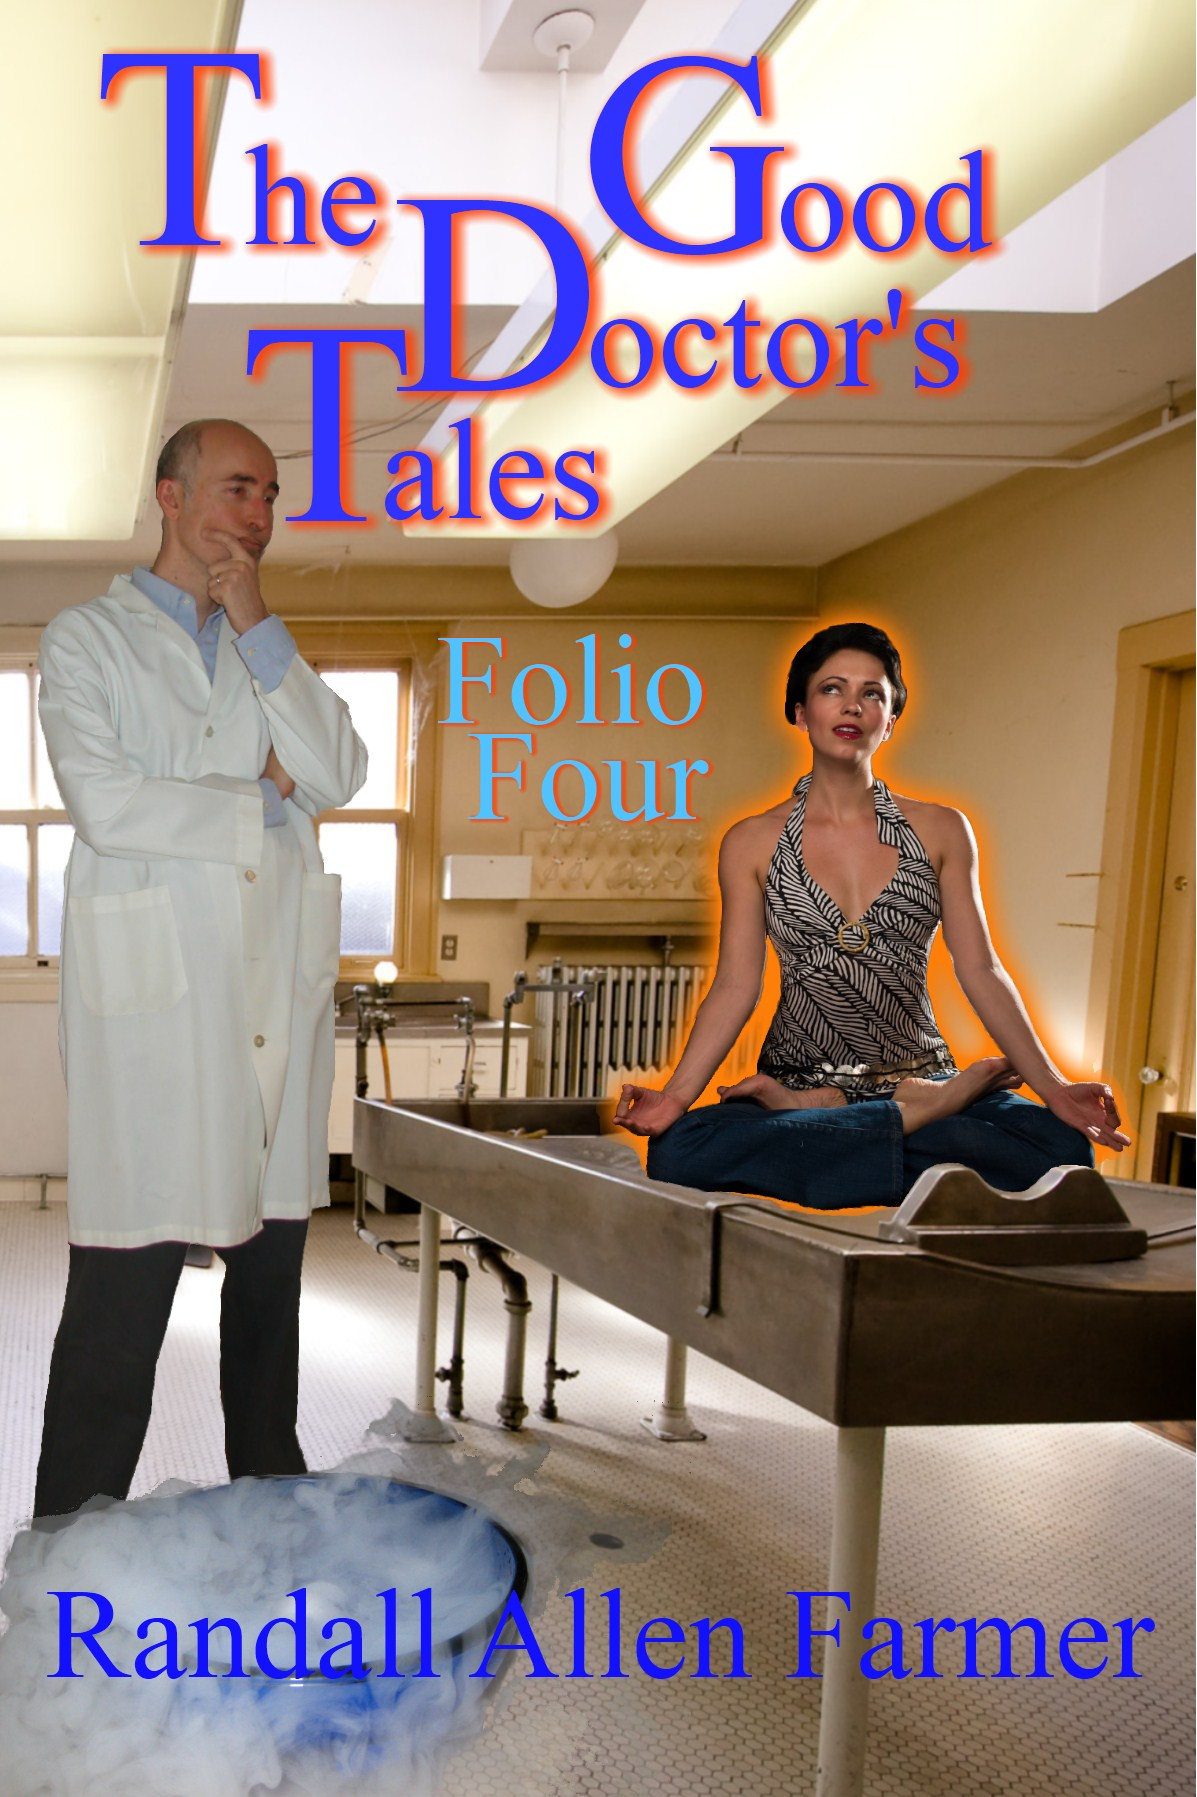 The Good Doctor's Tales Folio Four